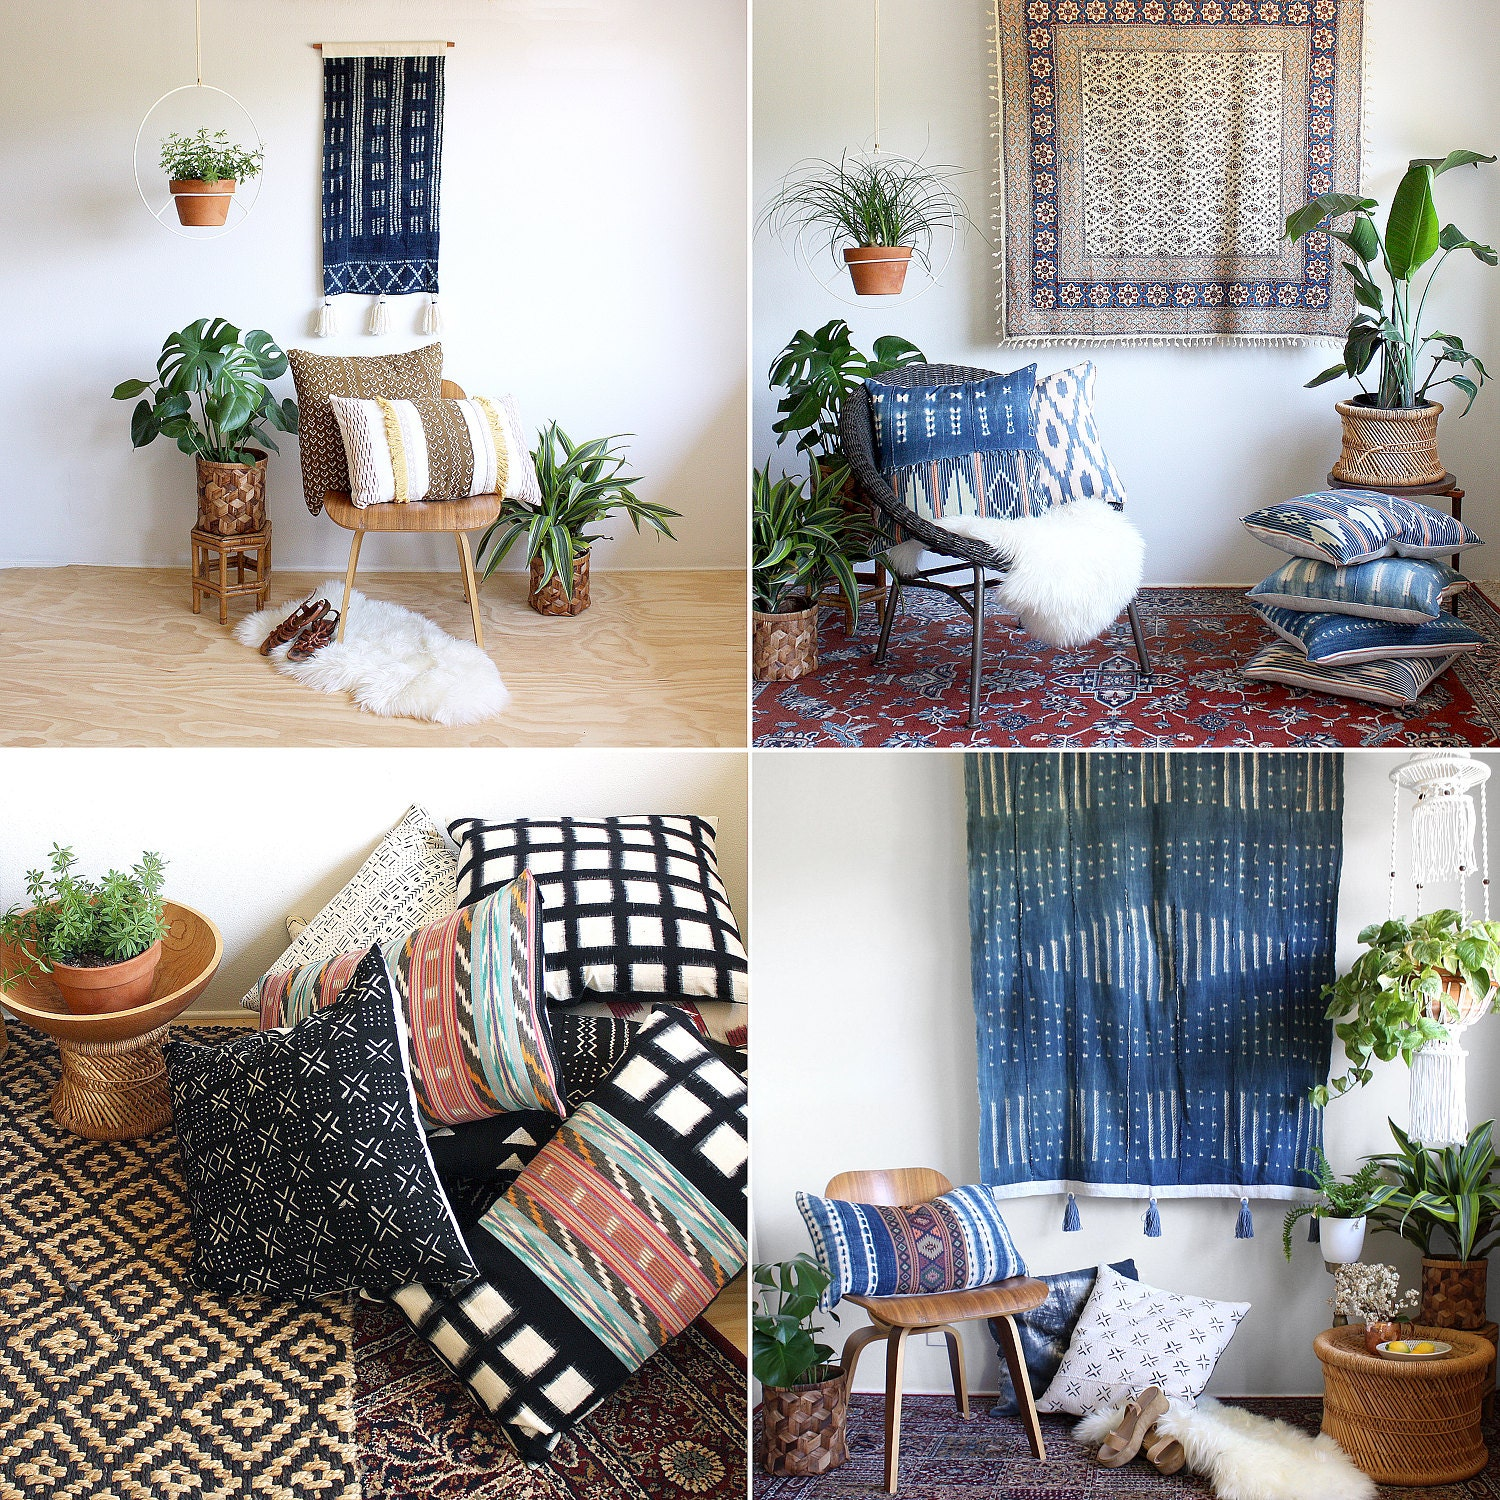 Mud cloth pillows and mud cloth wall hangings